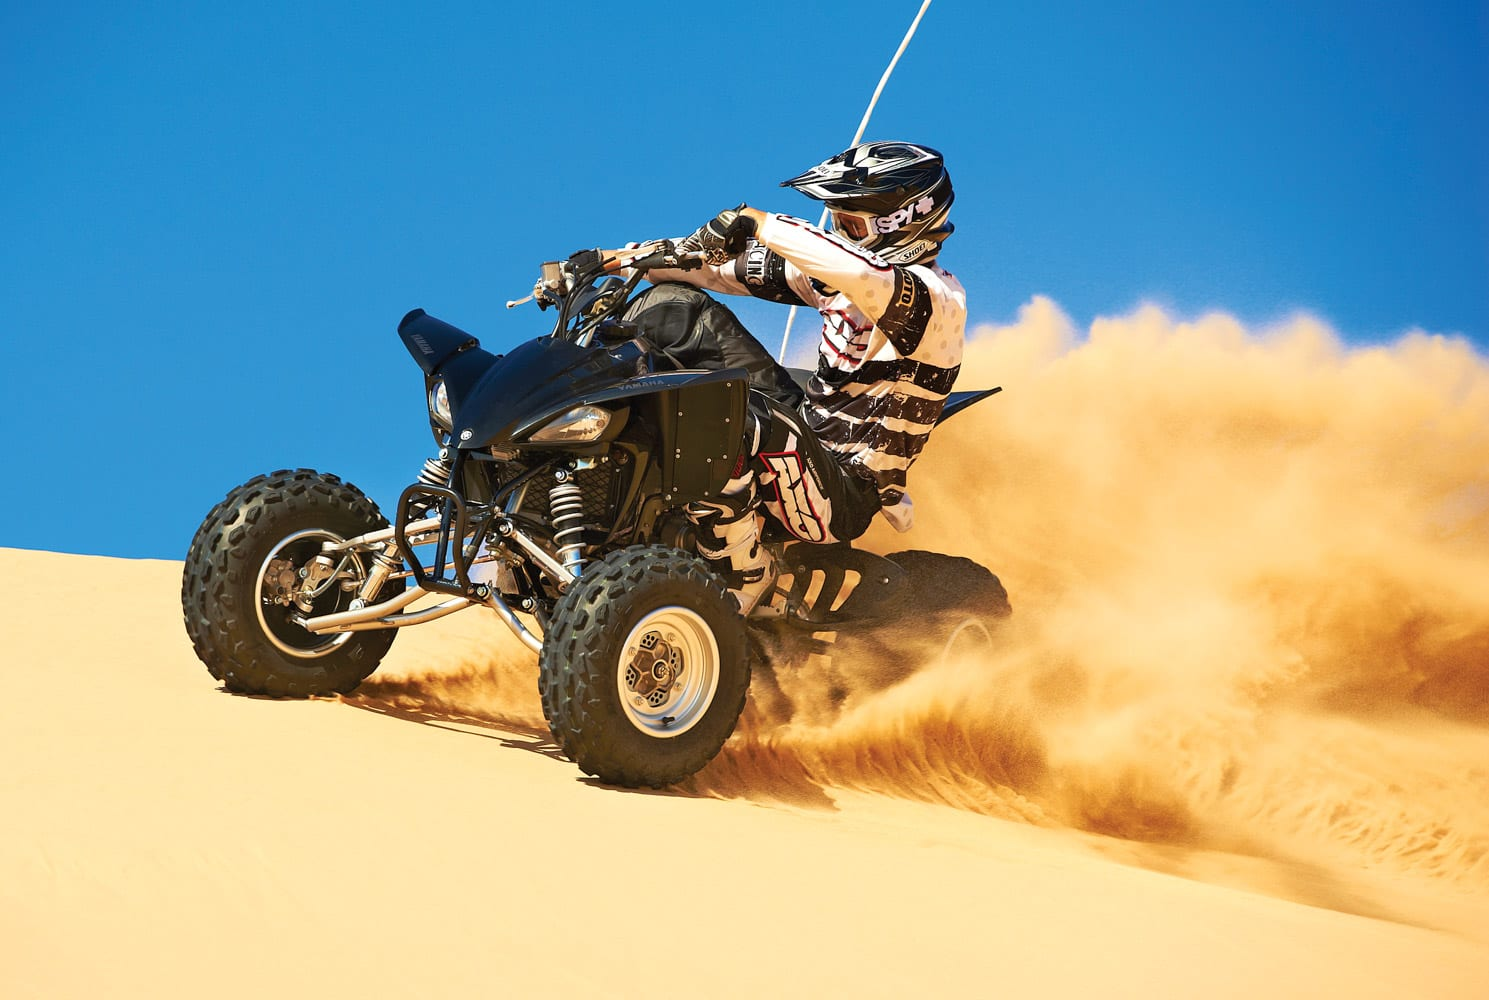 ATV Riding 101 Know your Limits